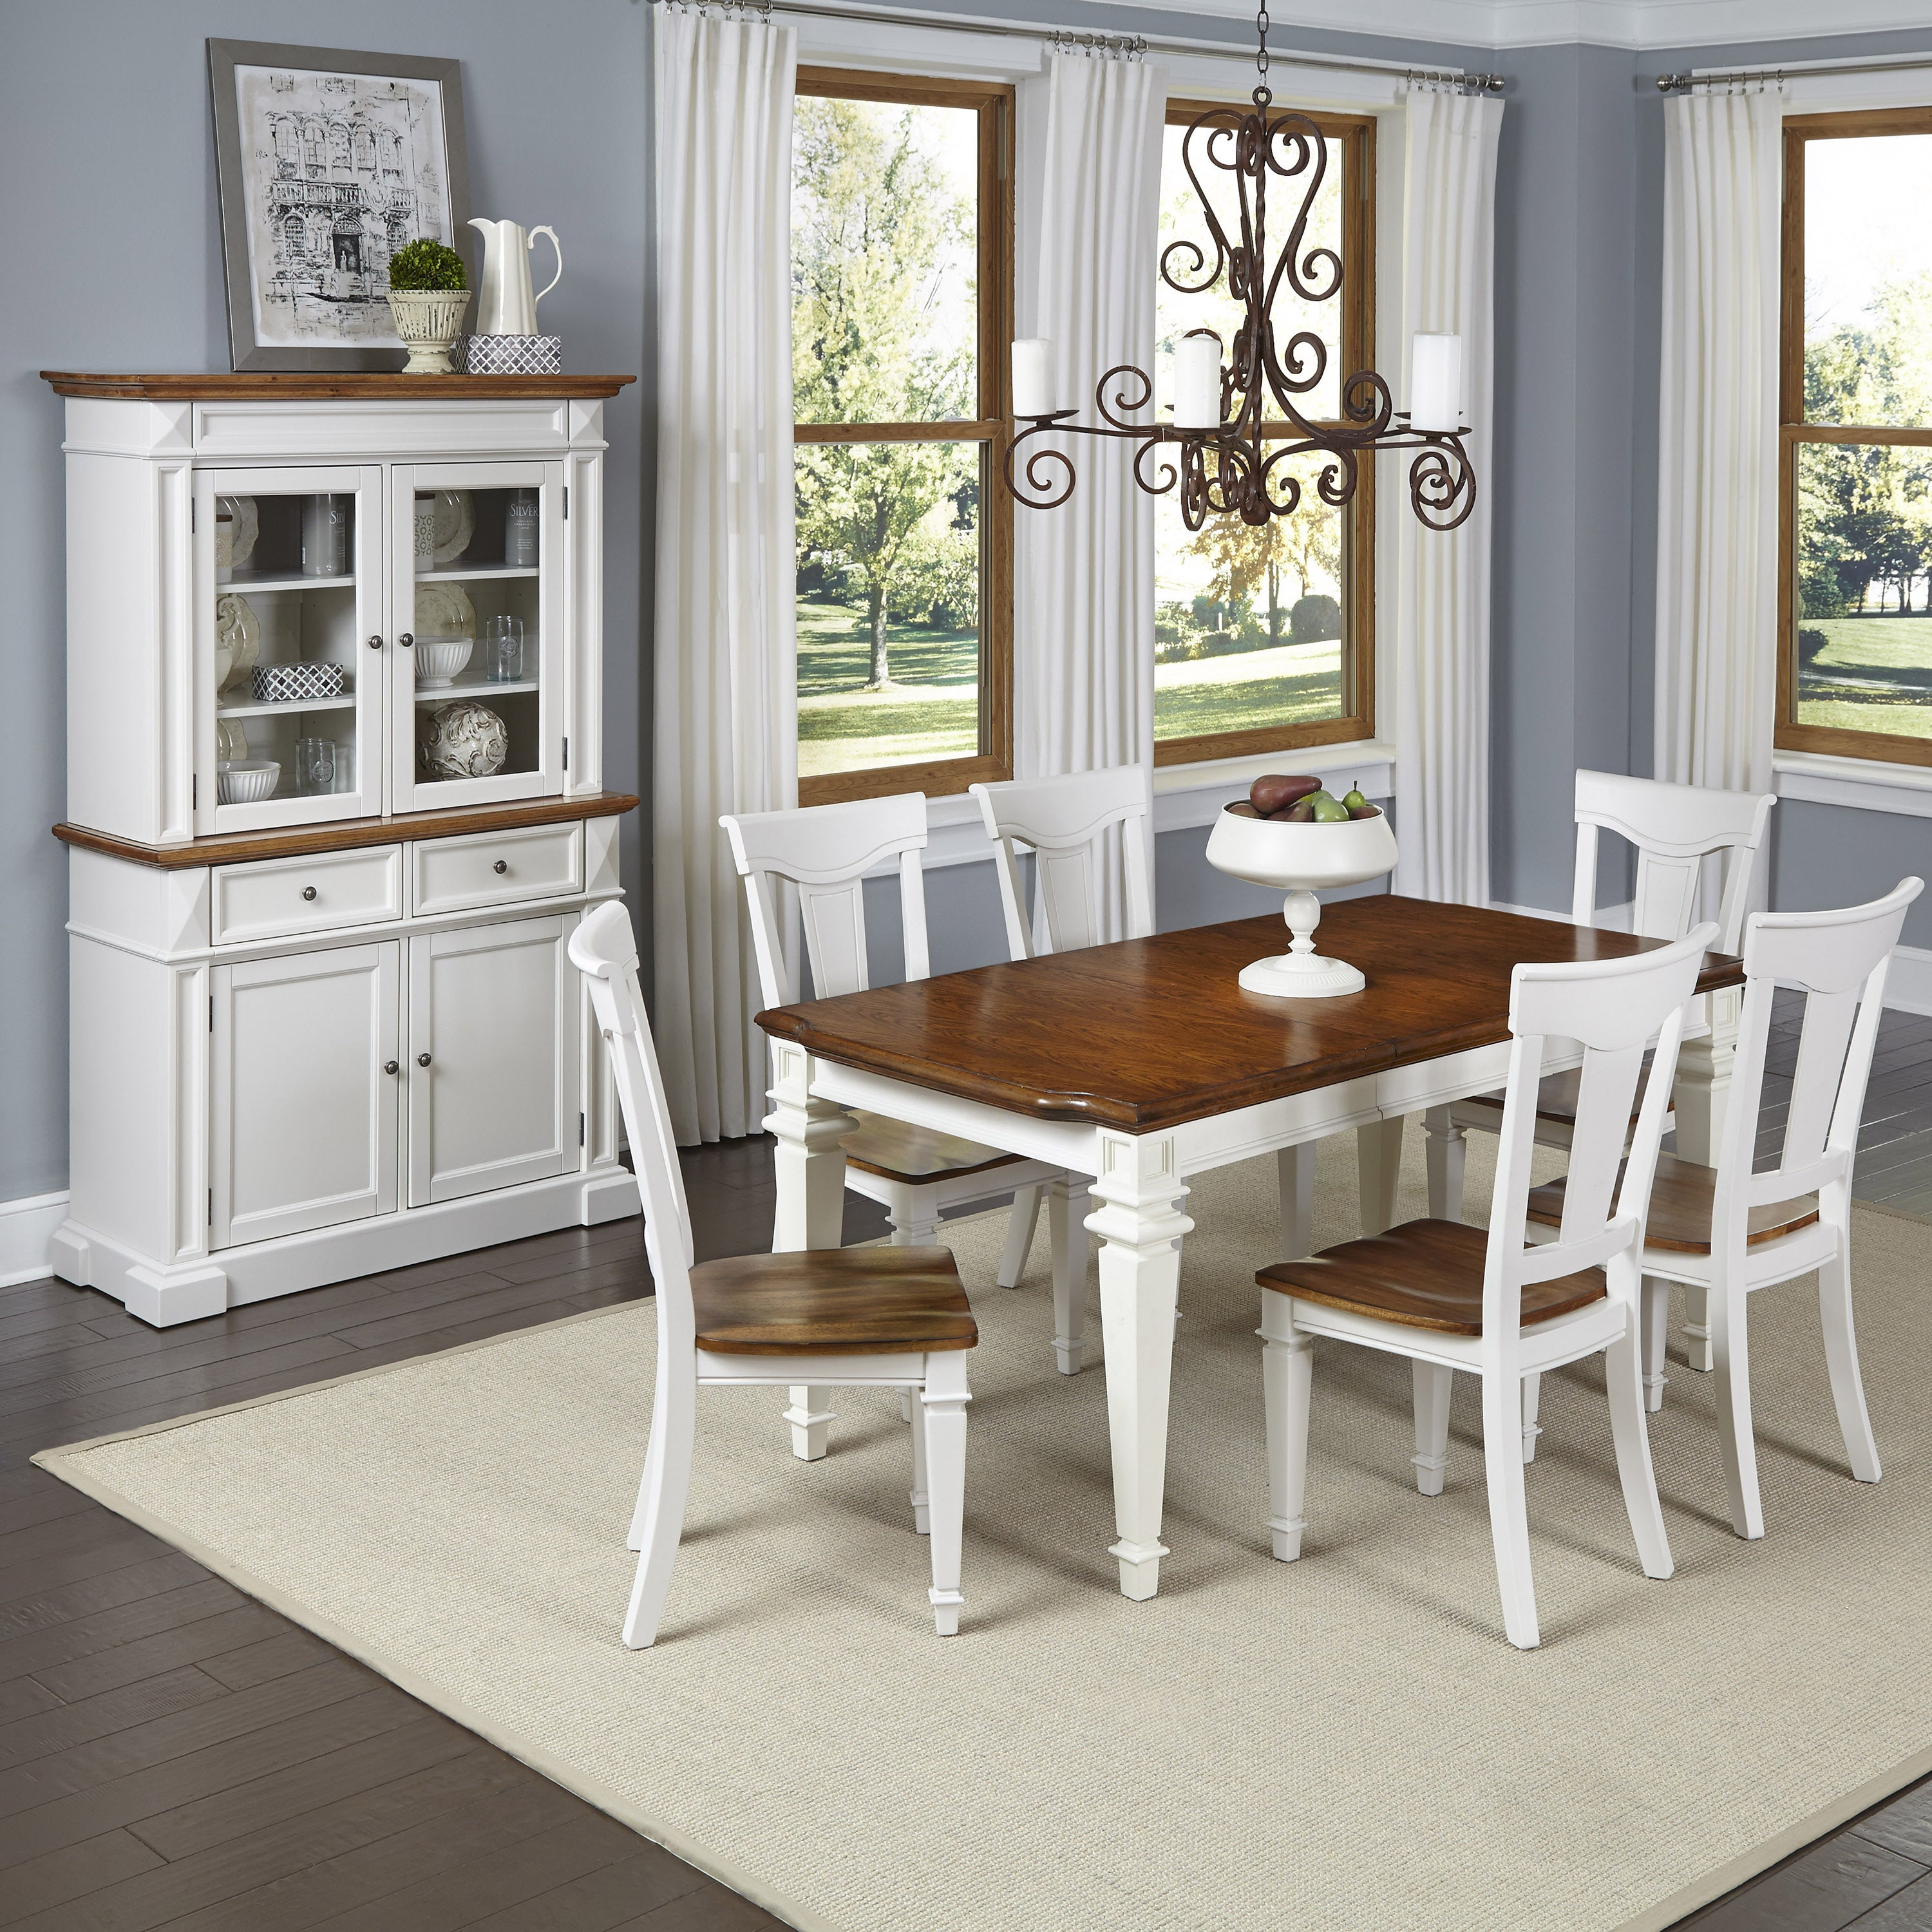 Americana 7 Piece Dining Set With Buffet And Hutch By Home Styles Overstock 9922555